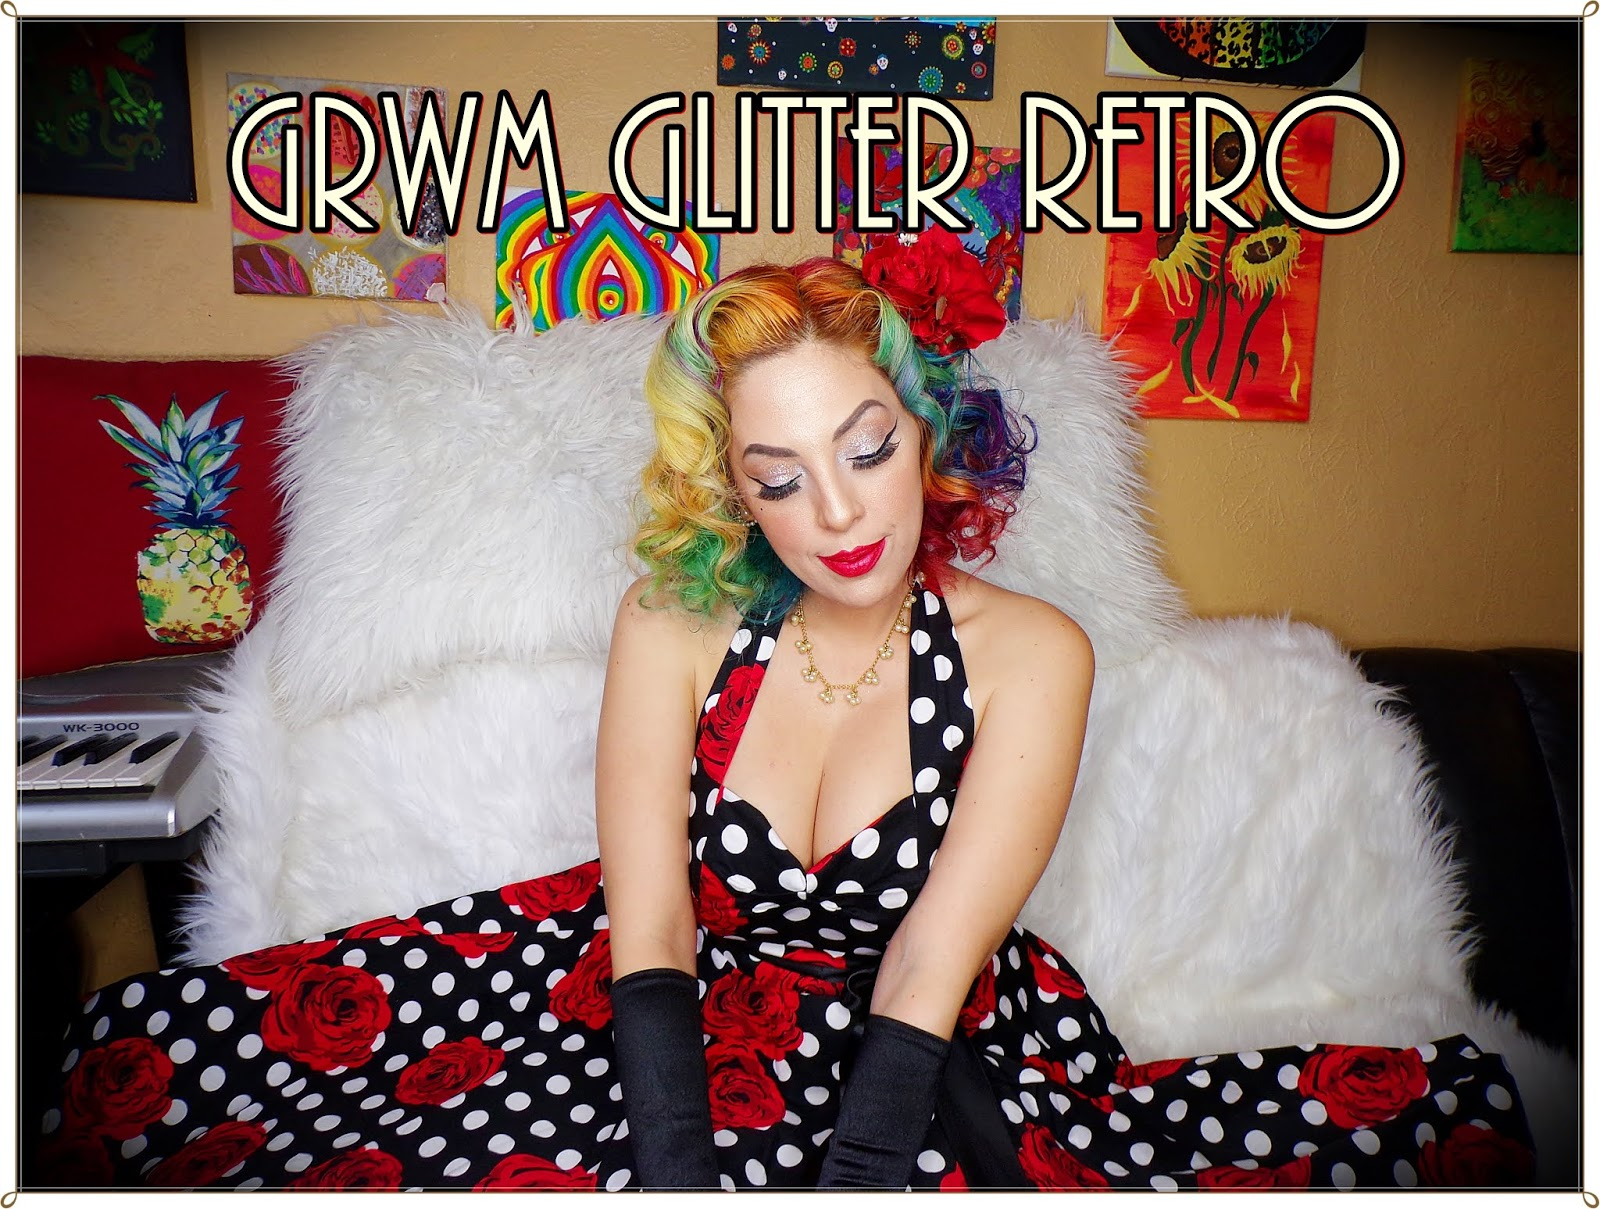 Be Glamorous By Lindsay Grwm Glitter Retro Not to mention brilliant beauty and grooming. be glamorous by lindsay